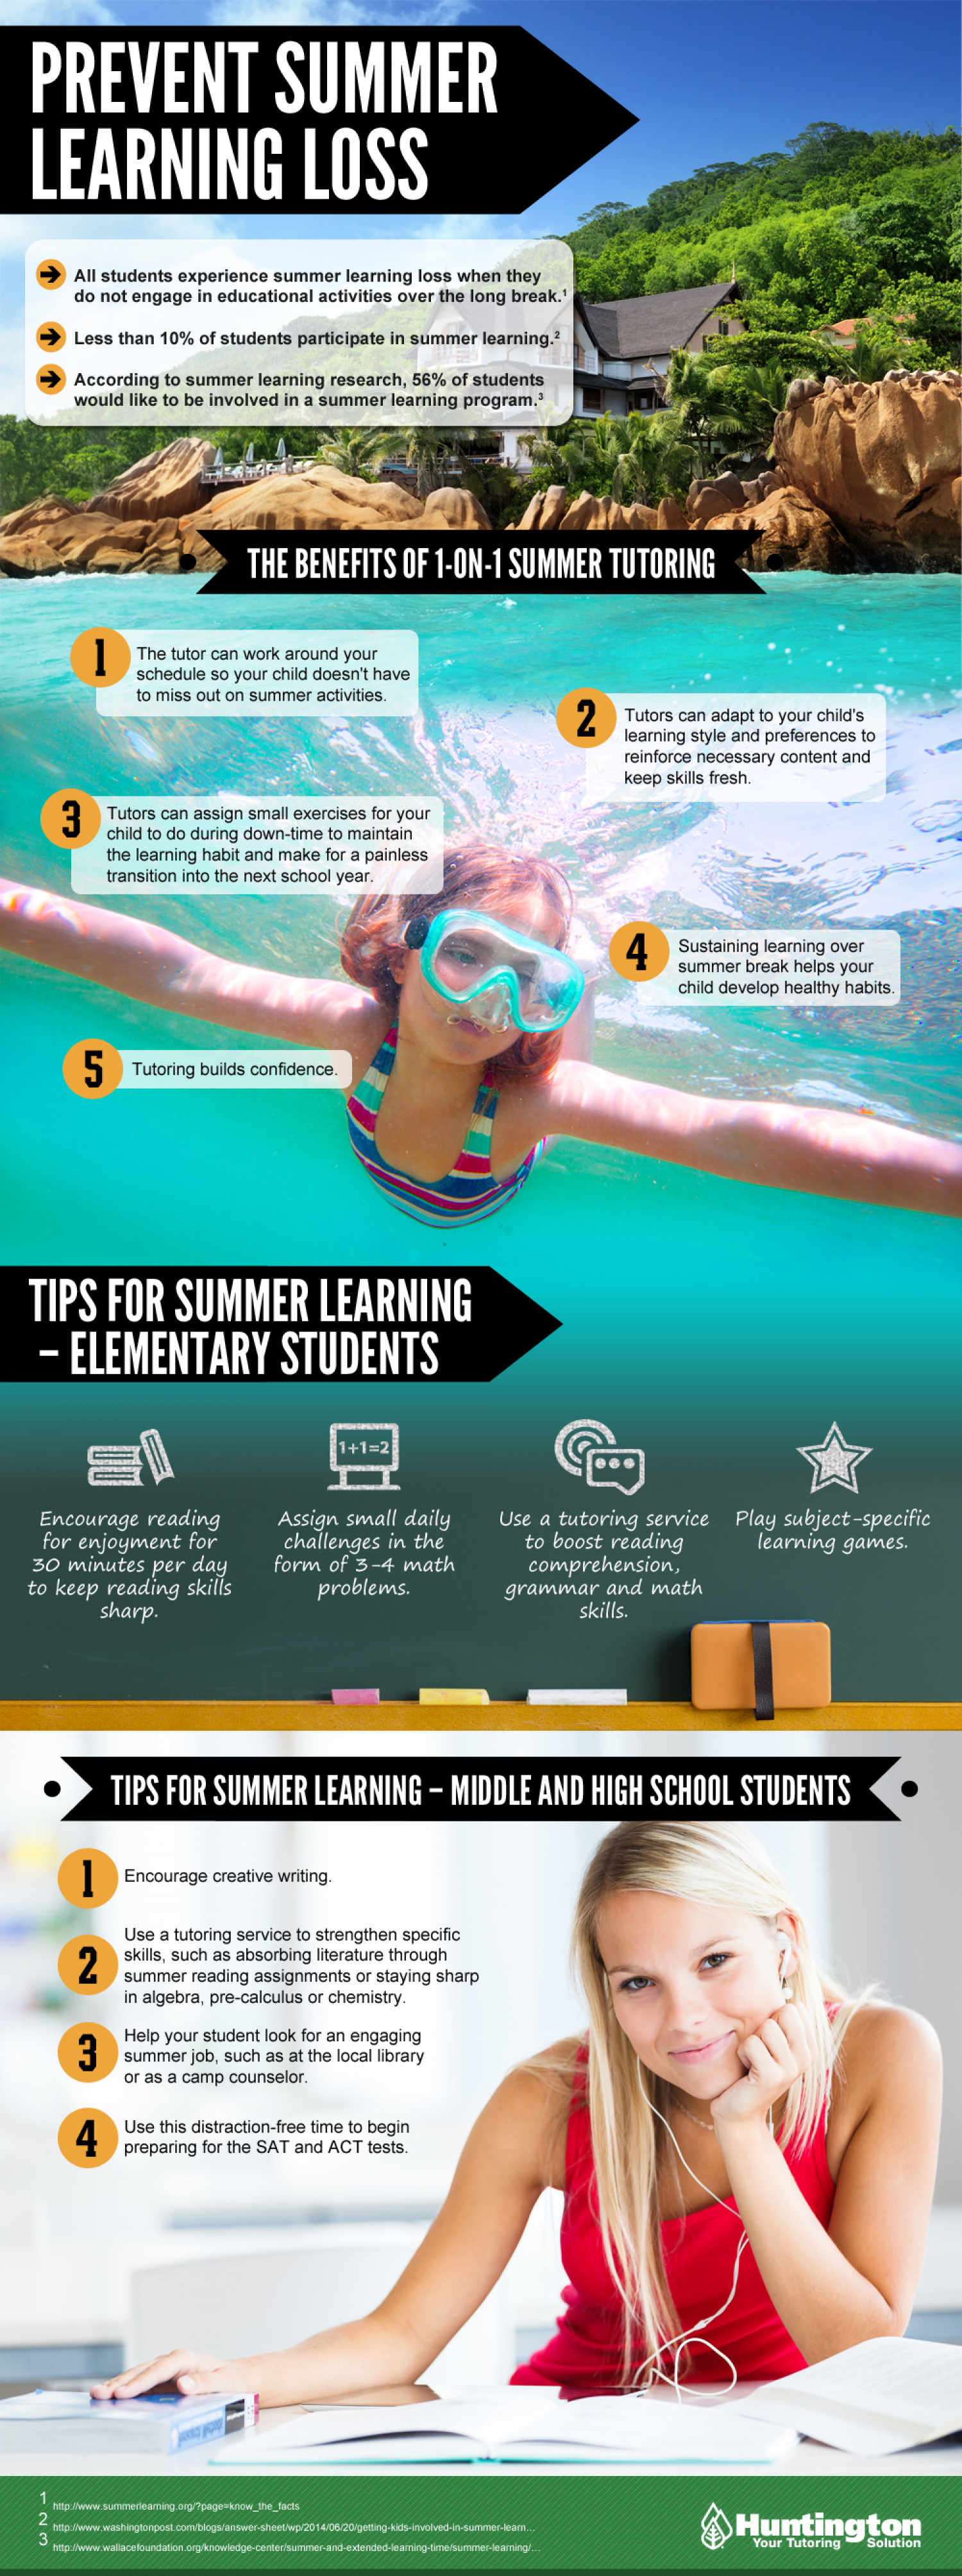 Prevent Summer Learning Loss Infographic